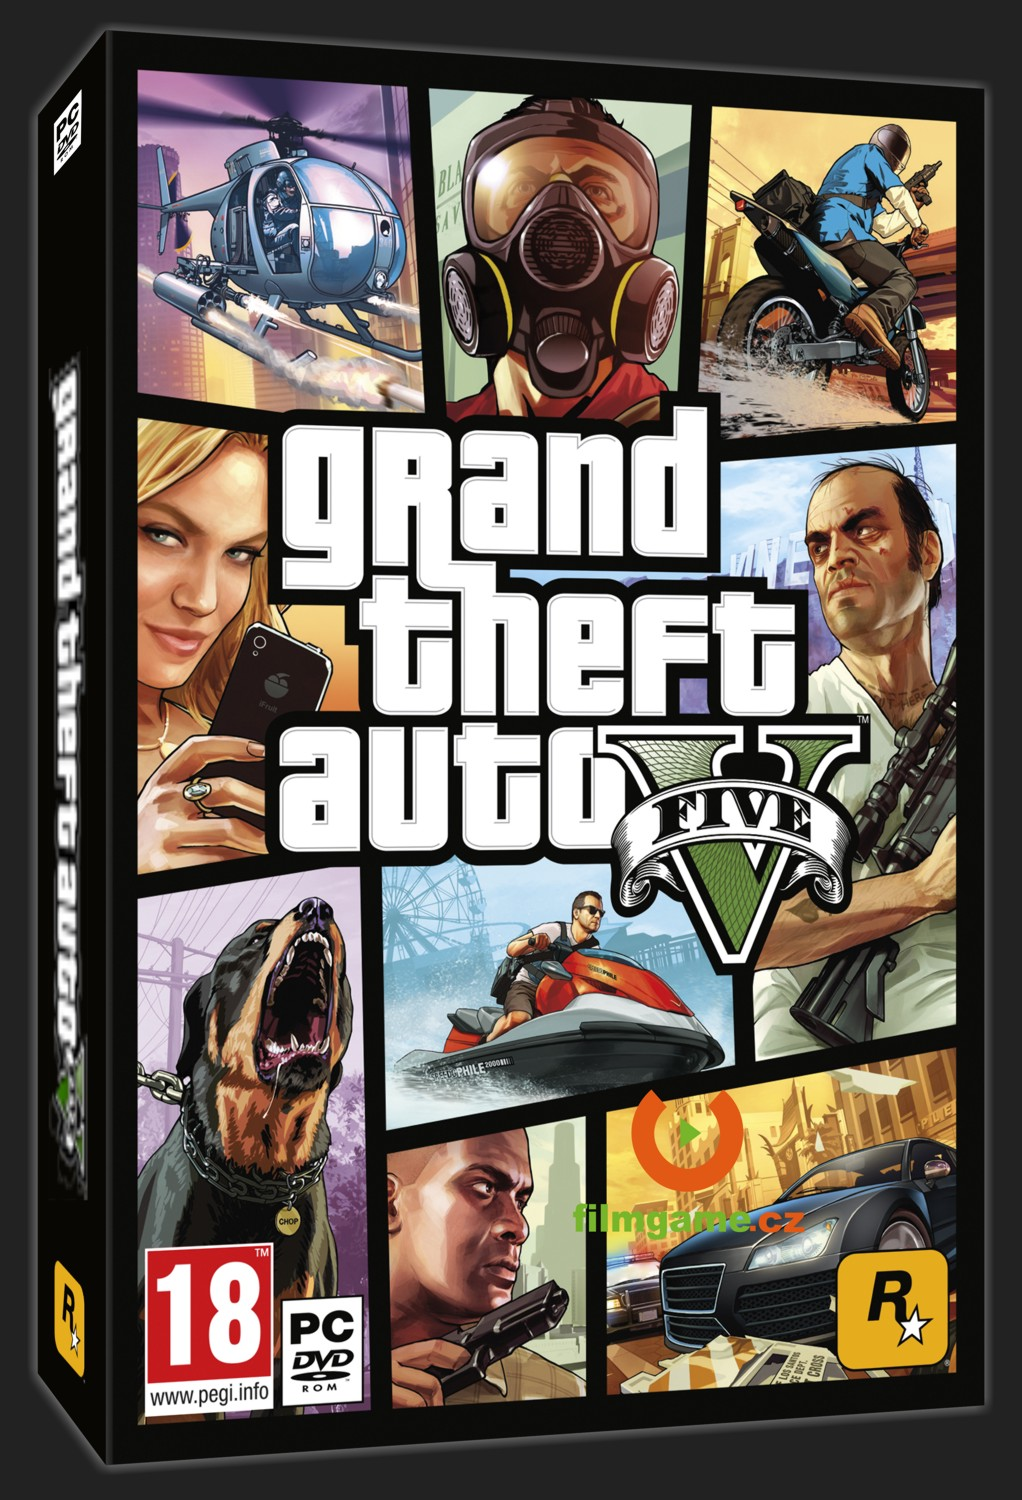 GTA V (GRAND THEFT AUTO 5) - PC